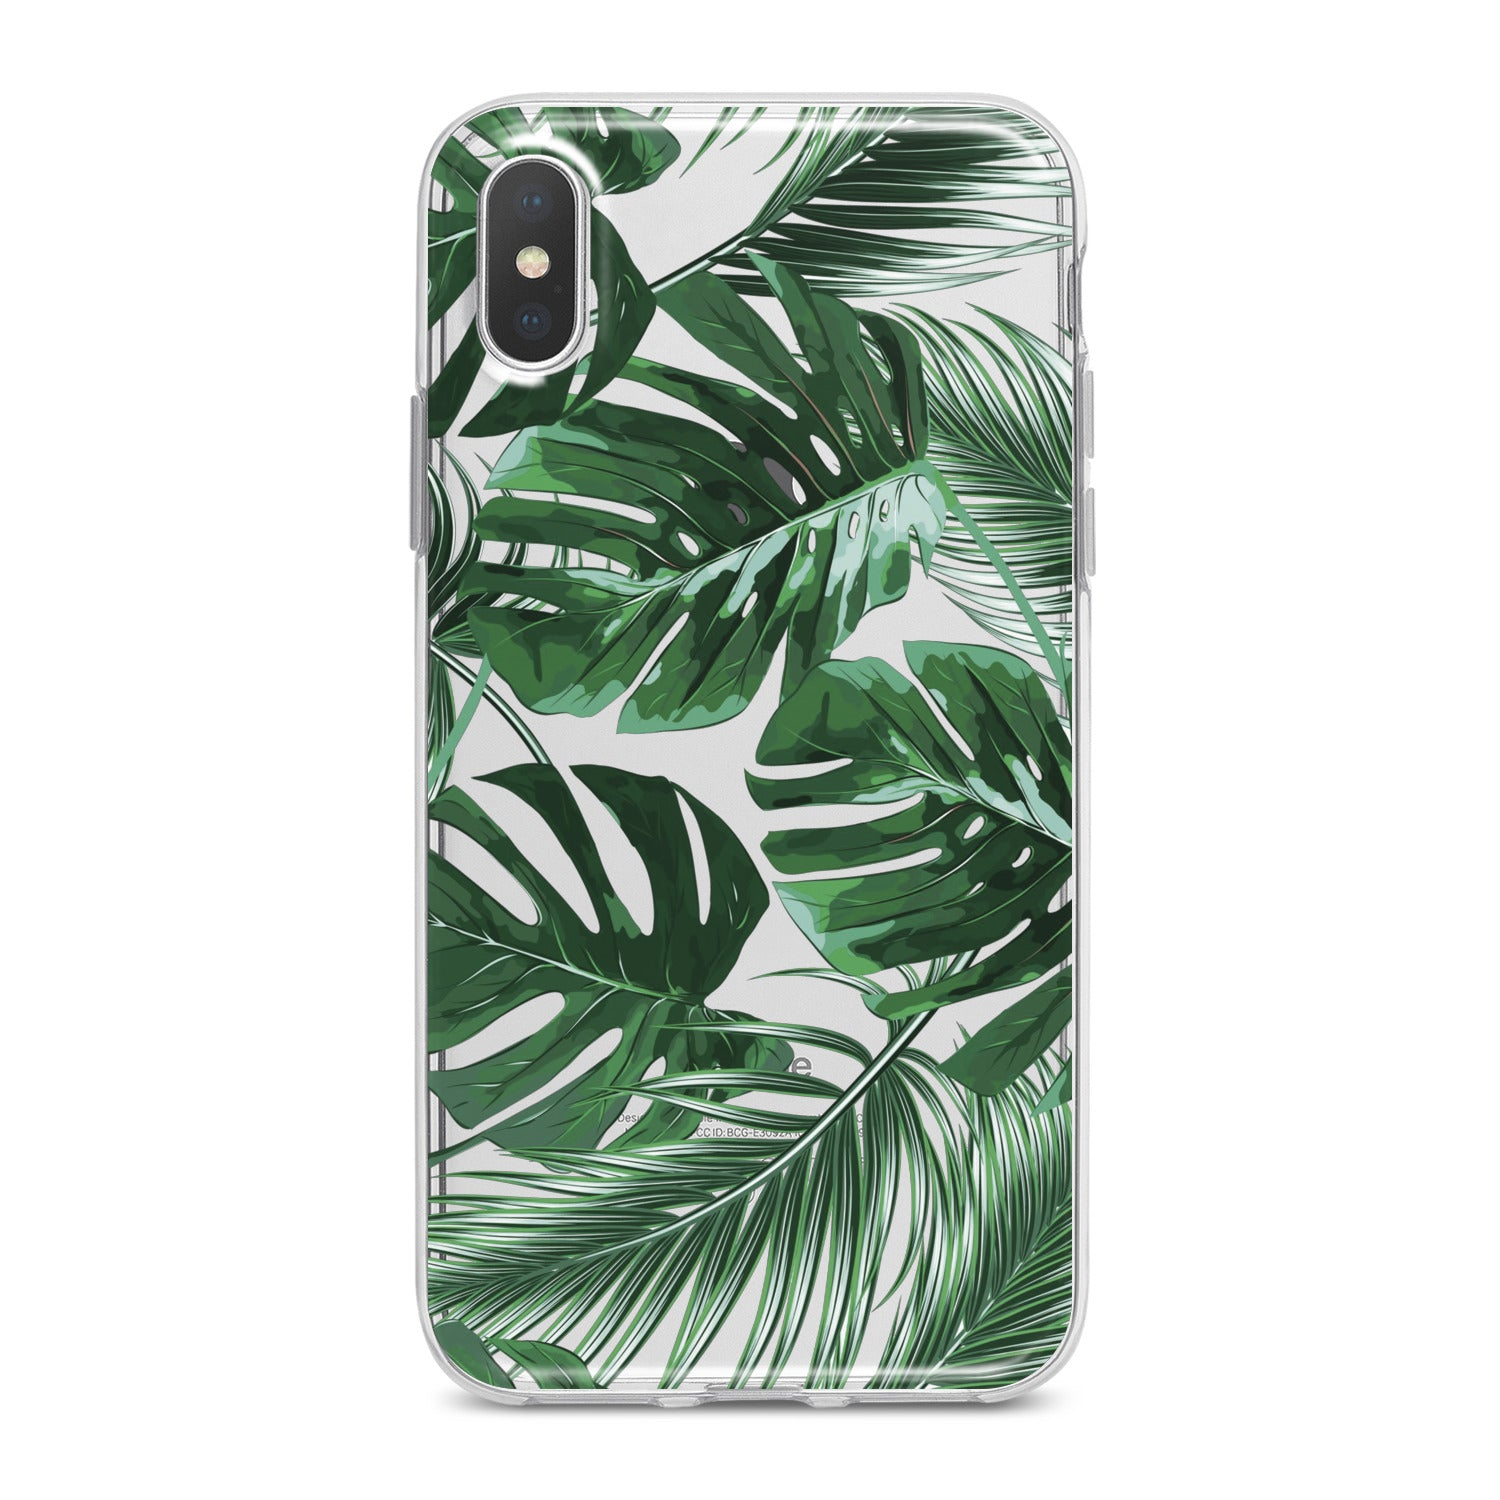 Lex Altern Monstera Leaves Phone Case for your iPhone & Android phone.